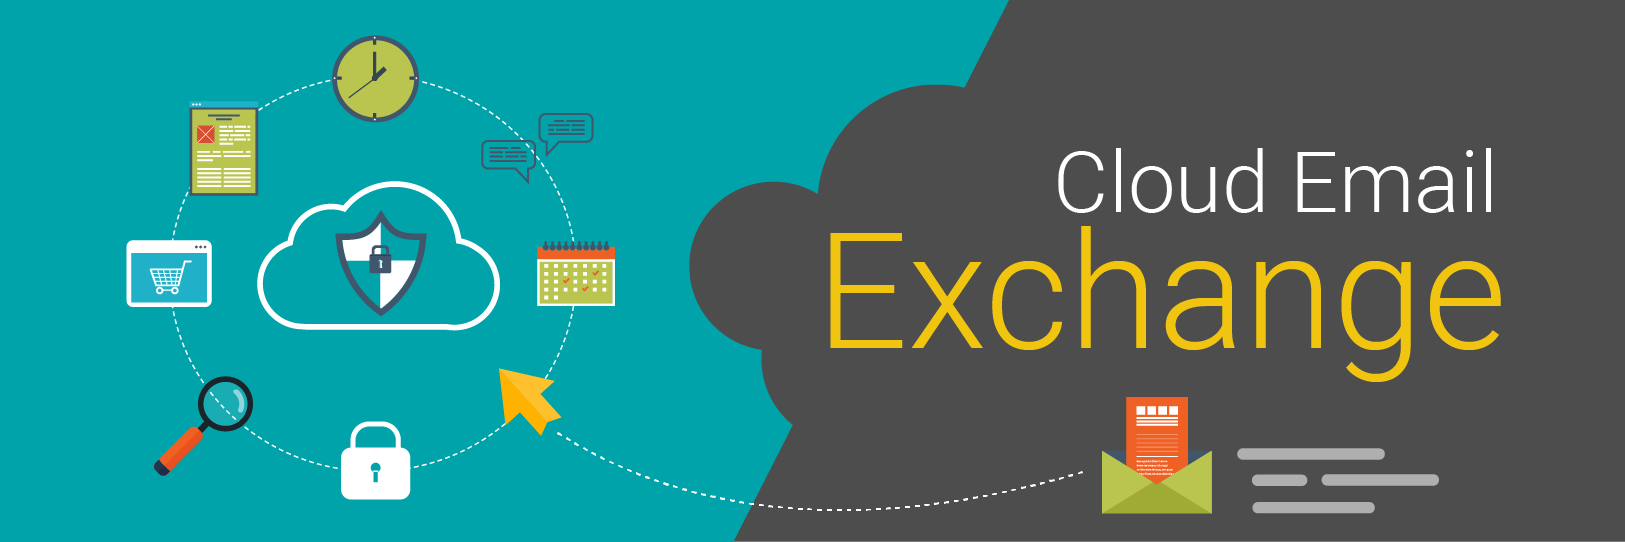 Cloud Data Protection Must Extend to Secure Email Exchange